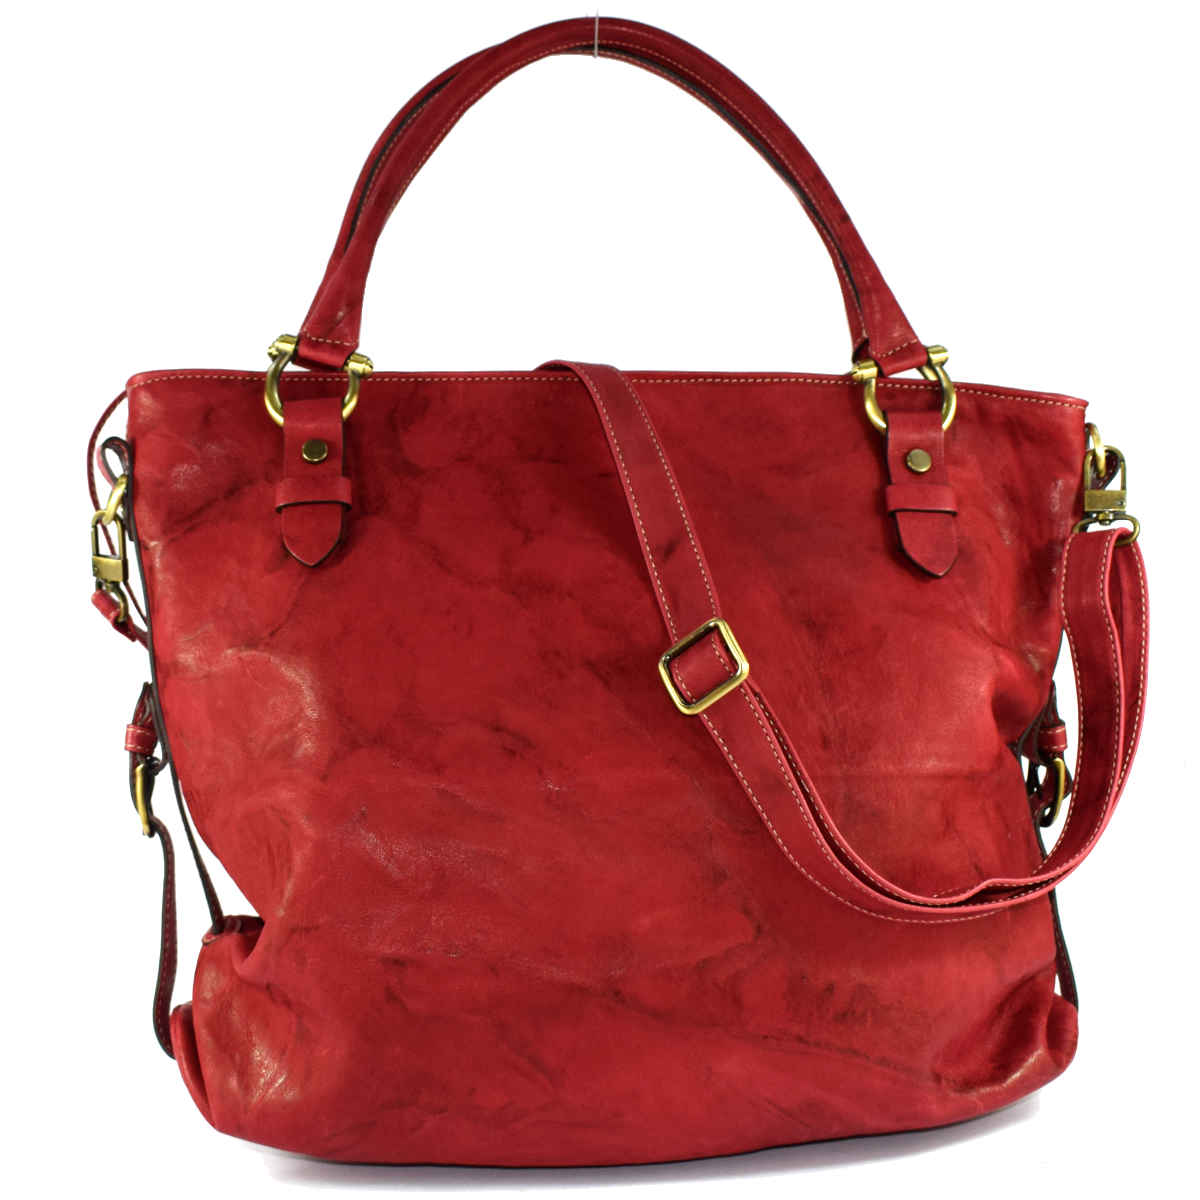 12621HAND BAG by Bottega Fiorentina